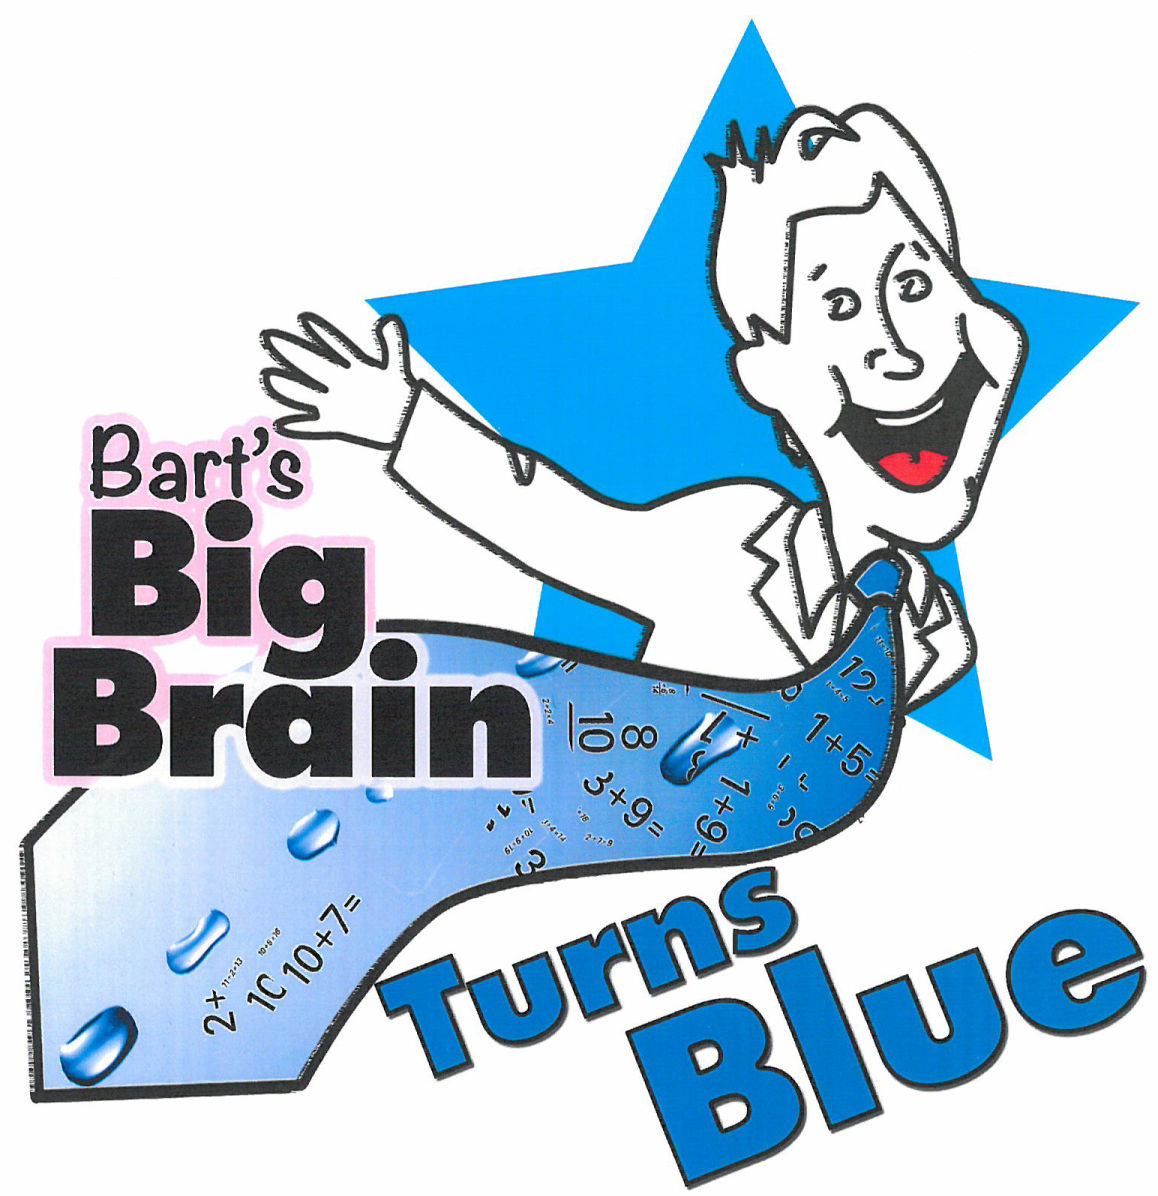 Bart's Big Brain Turns Blue